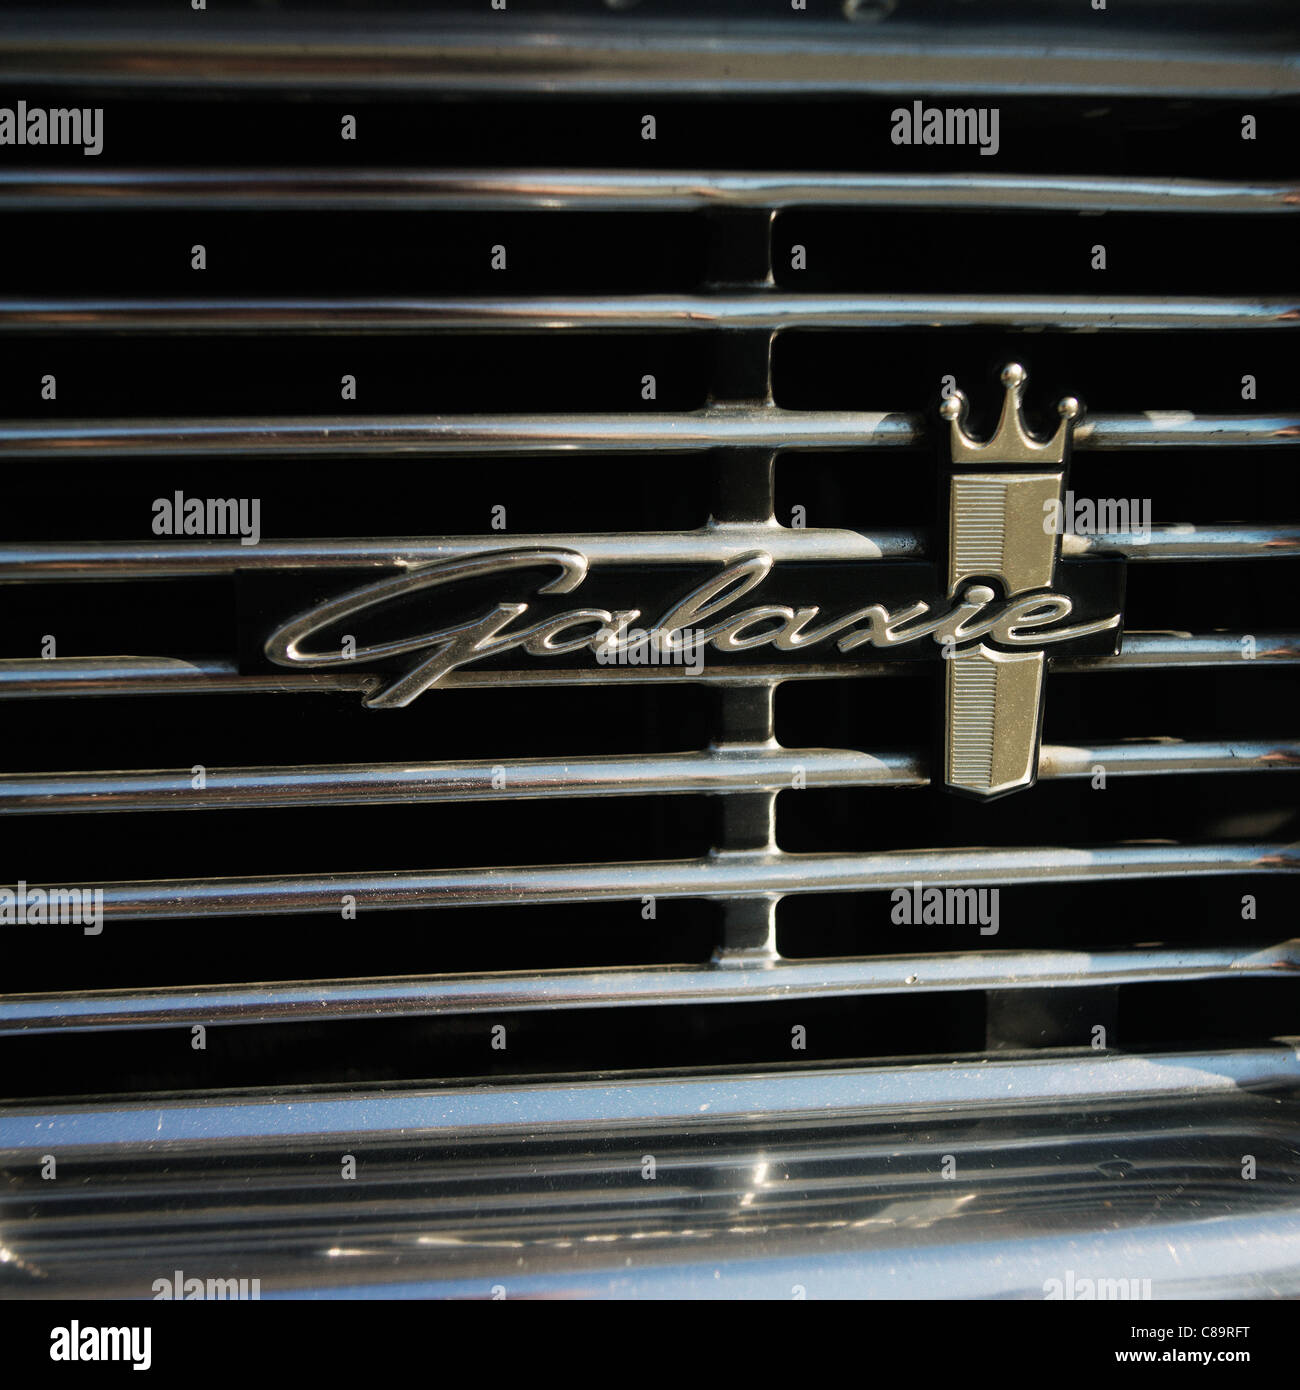 Ford Galaxie classic car grill close up - Stock Image